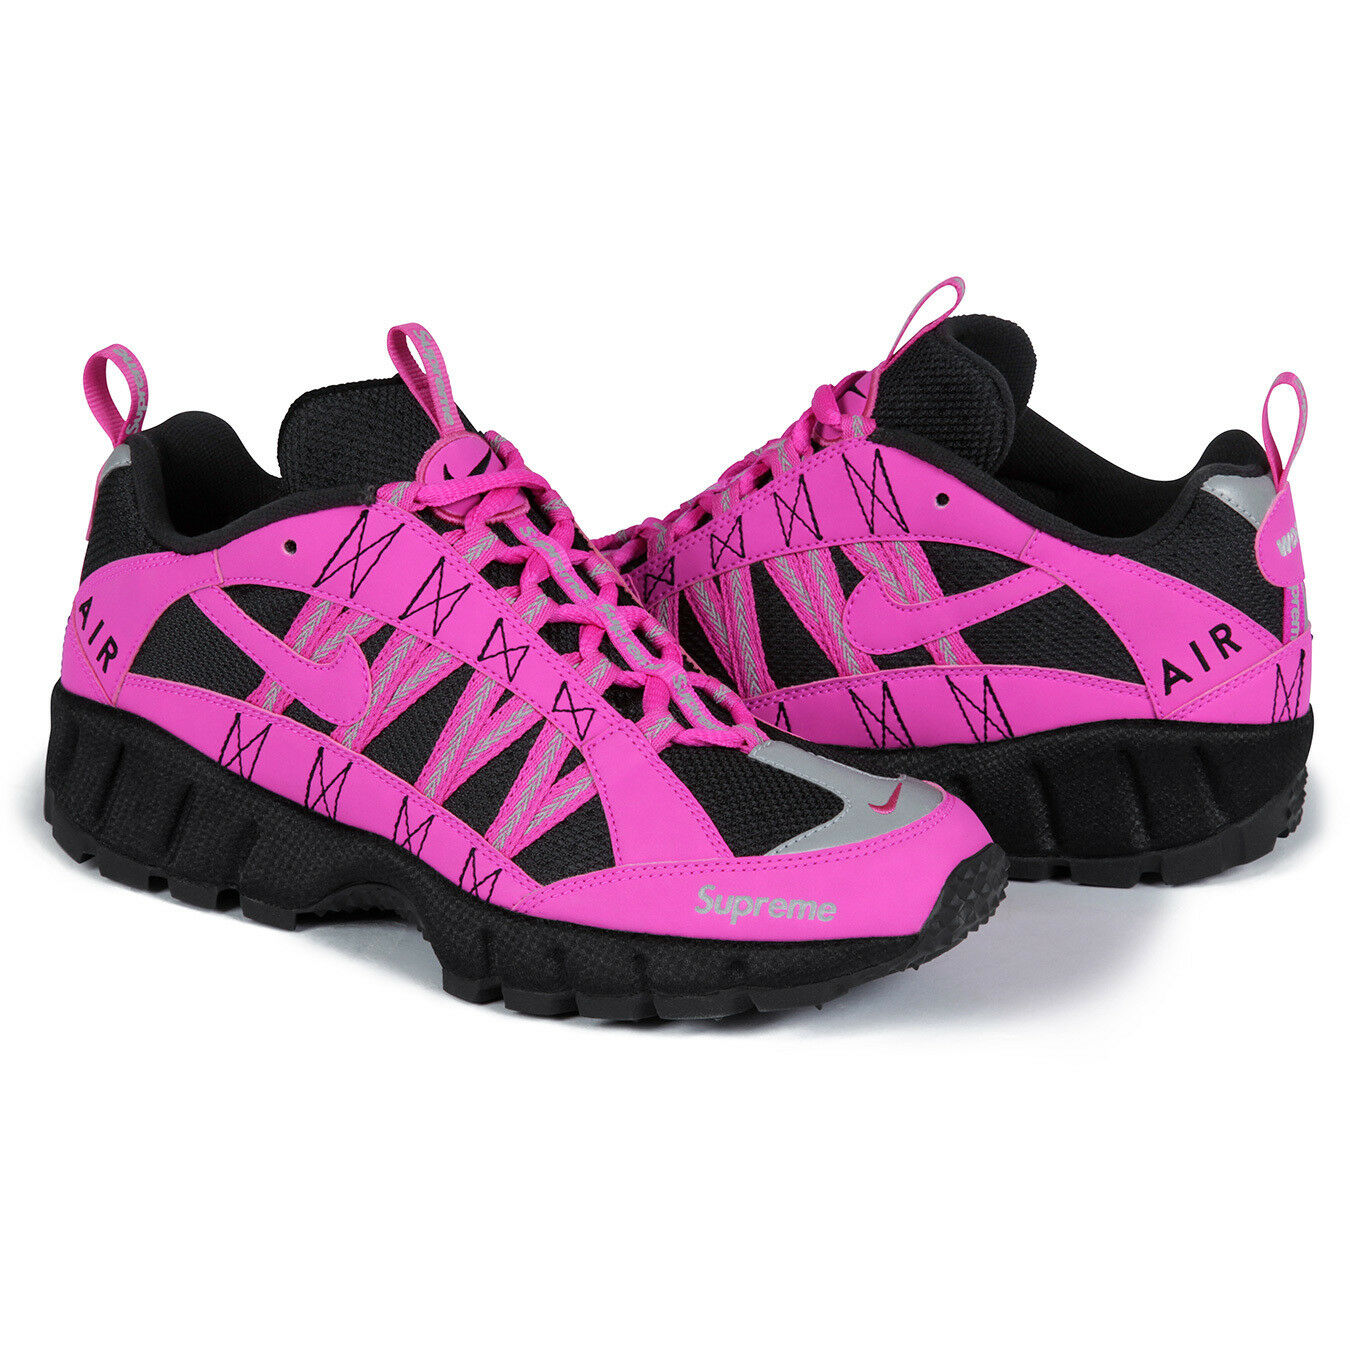 Supreme Reflective x Nike Air Humara Reflective Supreme Trail Runner Shoes, Pink, Size 8 eaceea